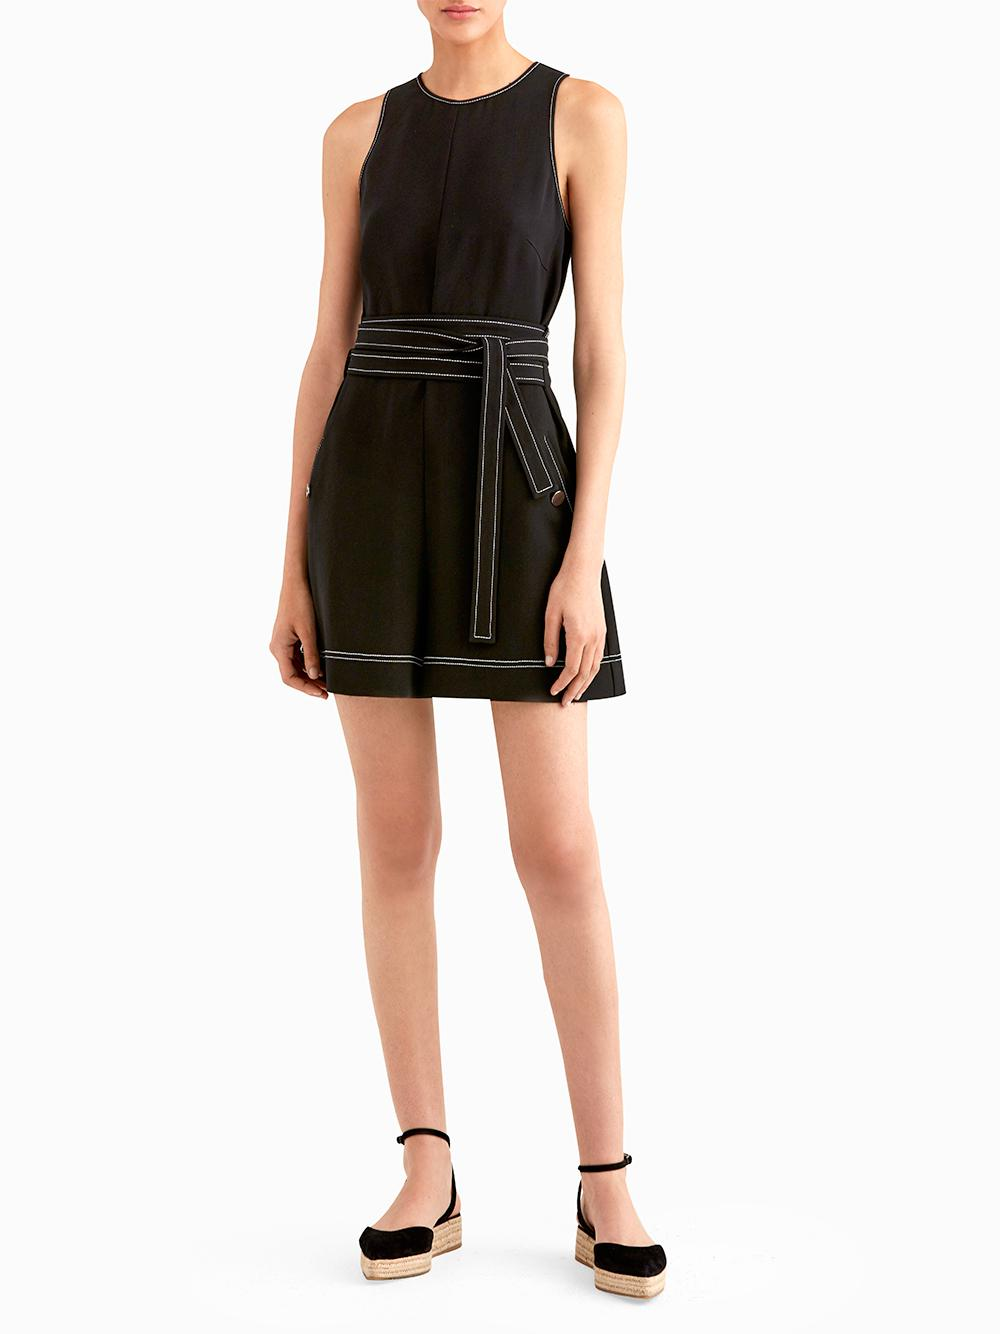 8c061bbce23c Lyst - Jason Wu Double Tie Romper With Top Stitching Detail in Black